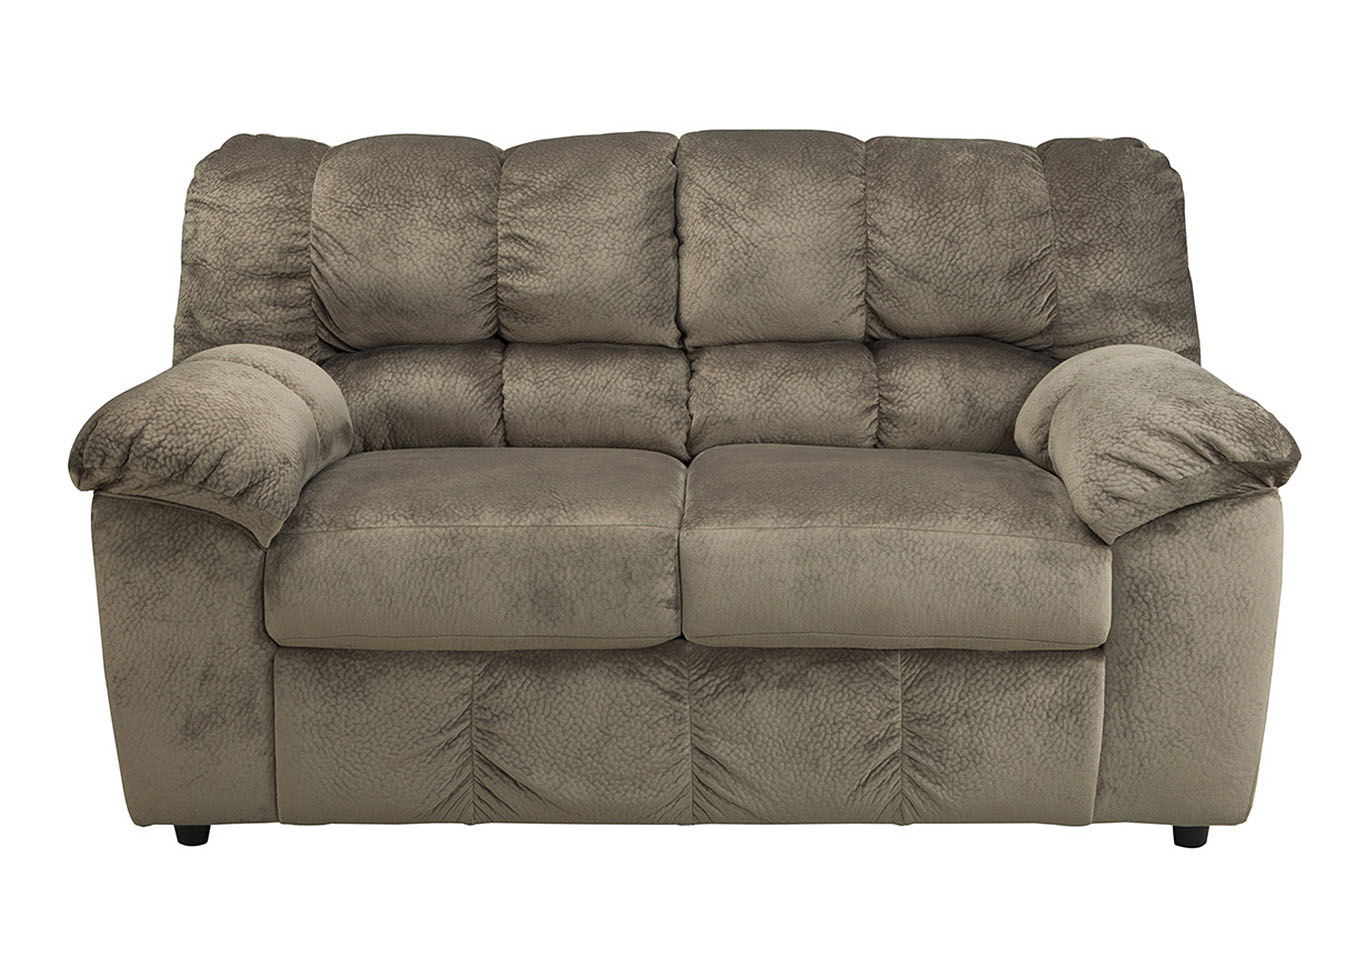 Furniture Liquidators Home Center Julson Dune Loveseat